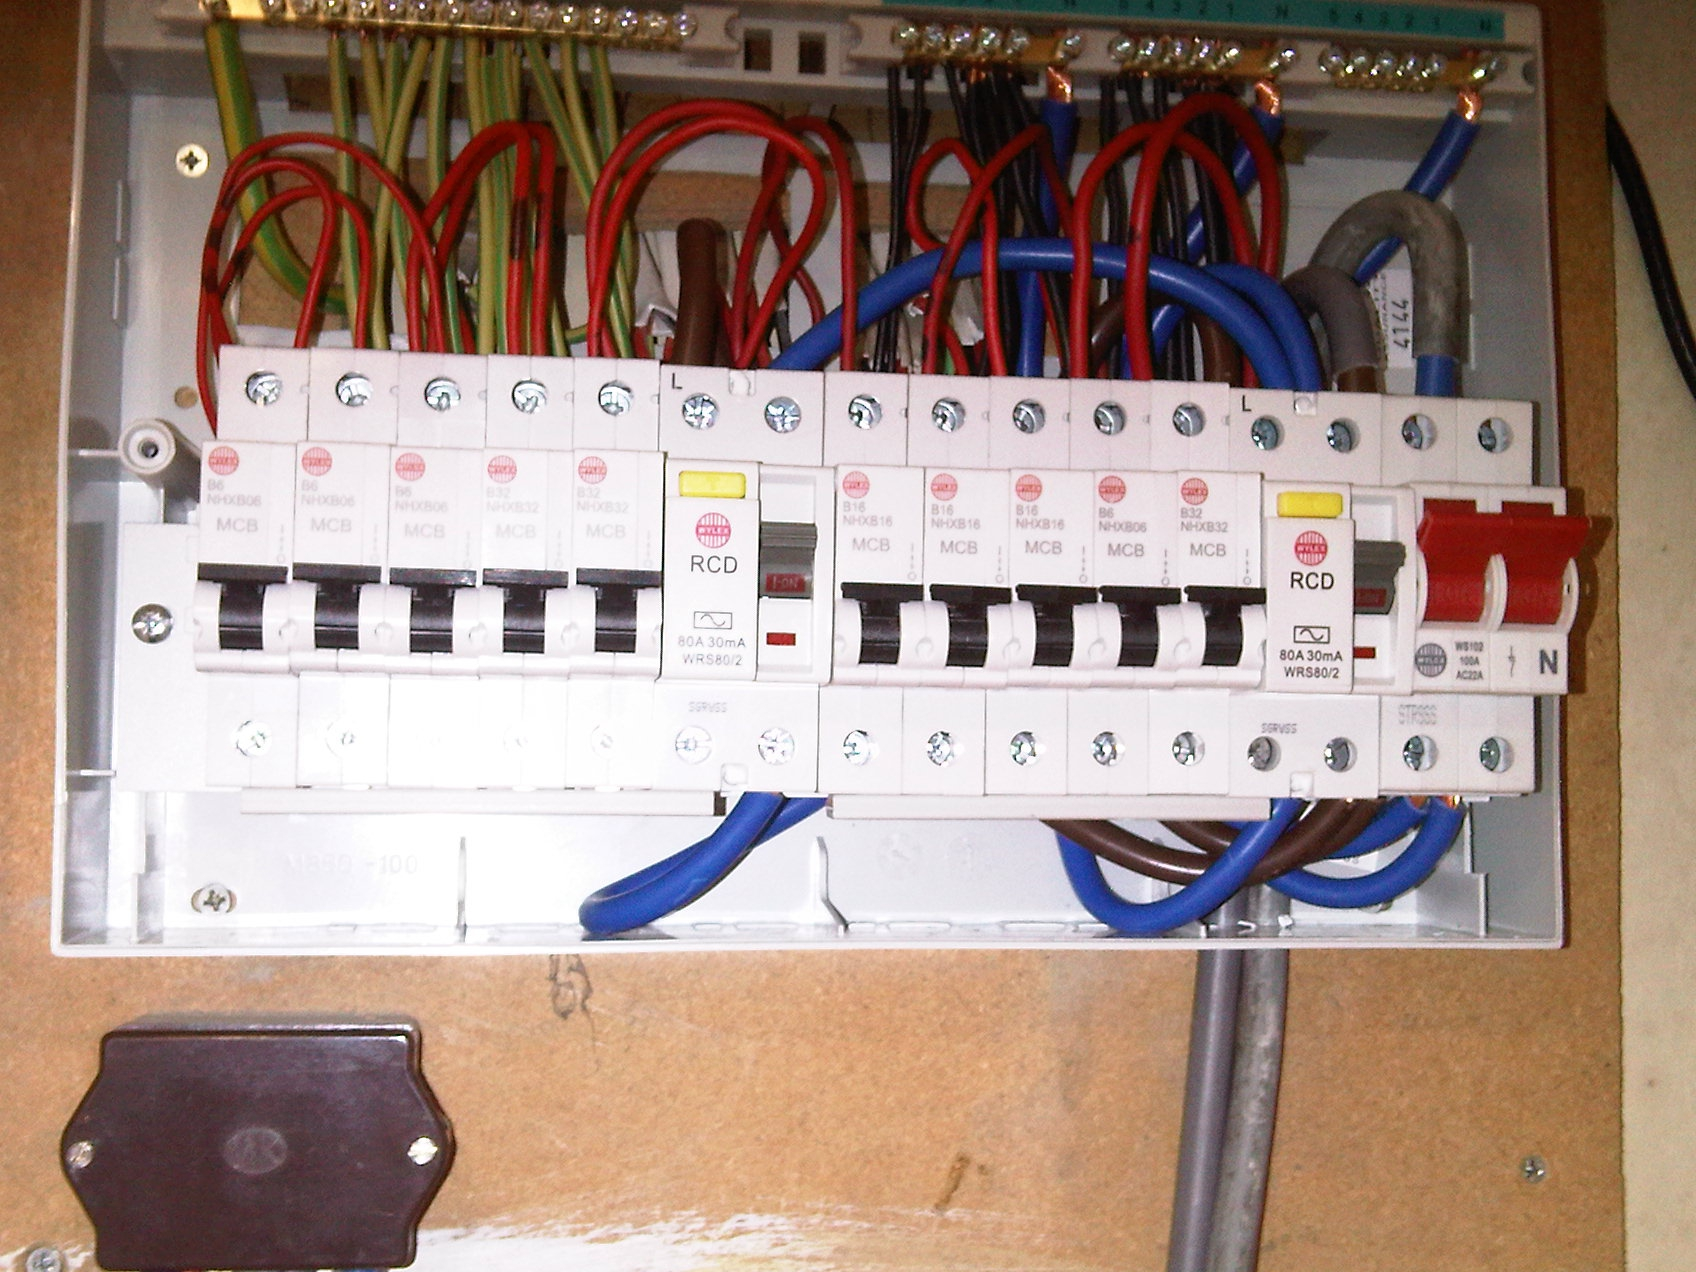 Fusebox 4 mcb fuse box wiring mcb fuse box \u2022 wiring diagrams j squared co how to replace fuse in fuse box at alyssarenee.co